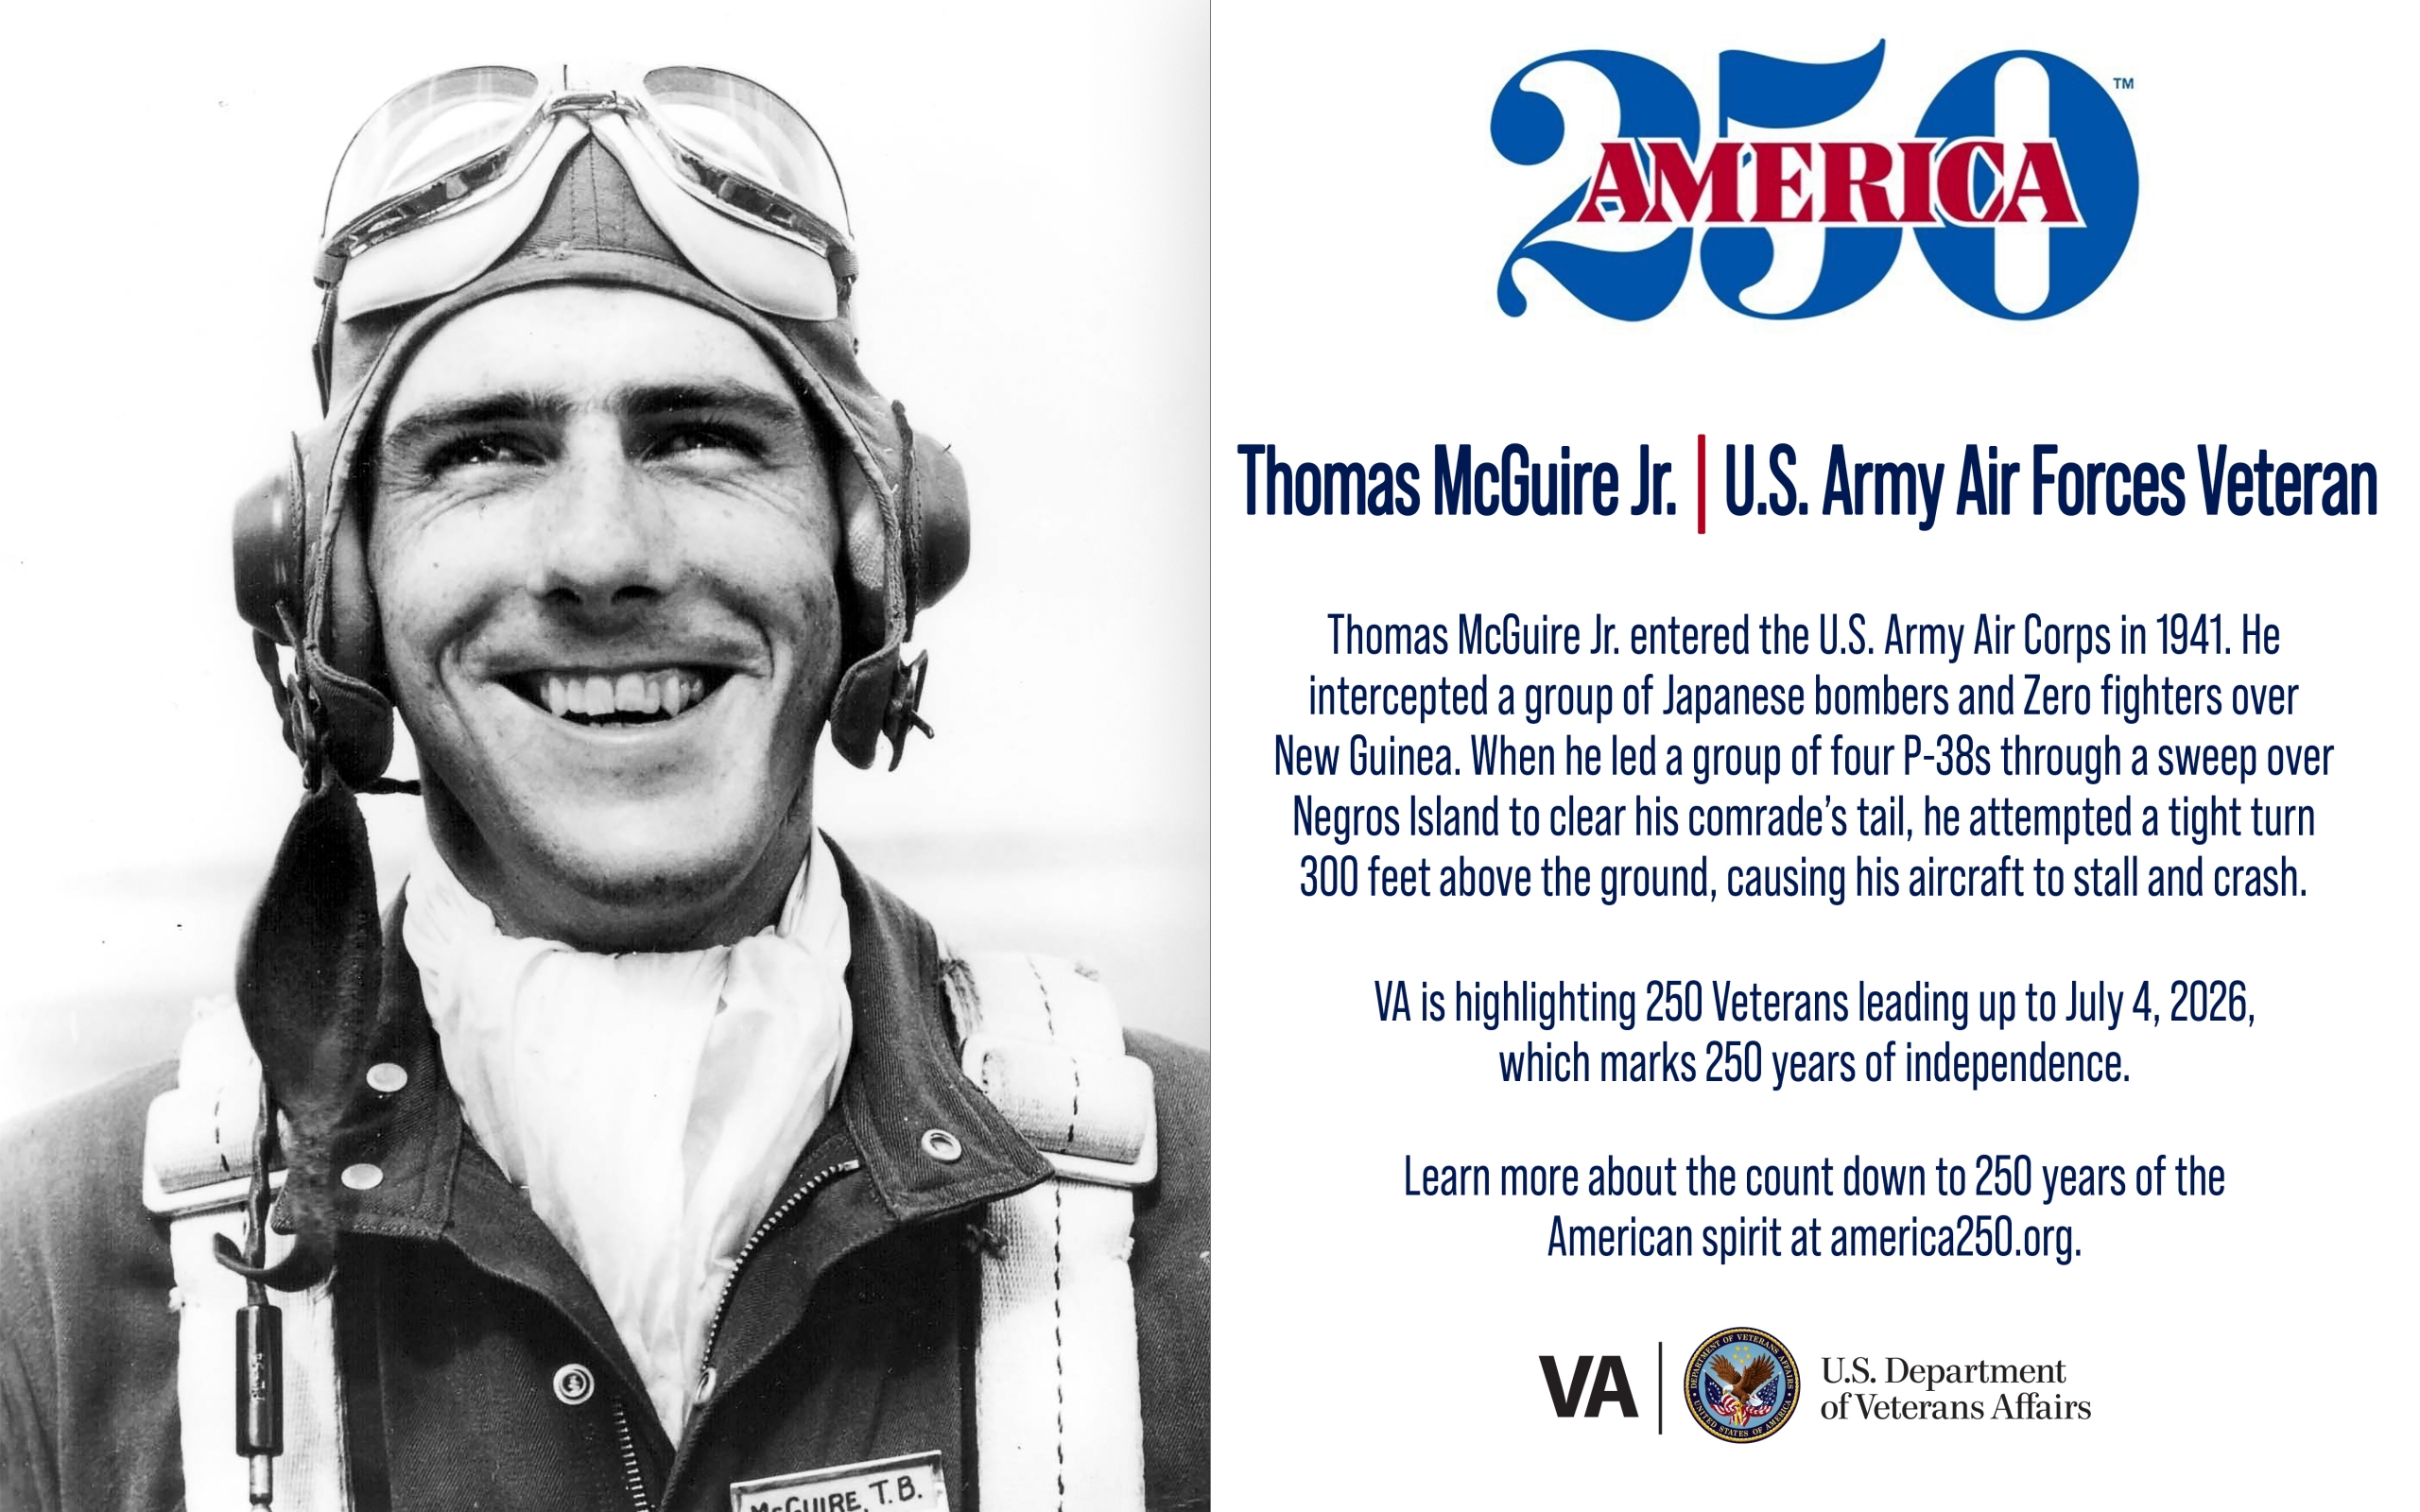 This week's America250 salute is Army Air Forces Veteran Thomas McGuire Jr., who was one of the two highest-scoring aces in American military history.